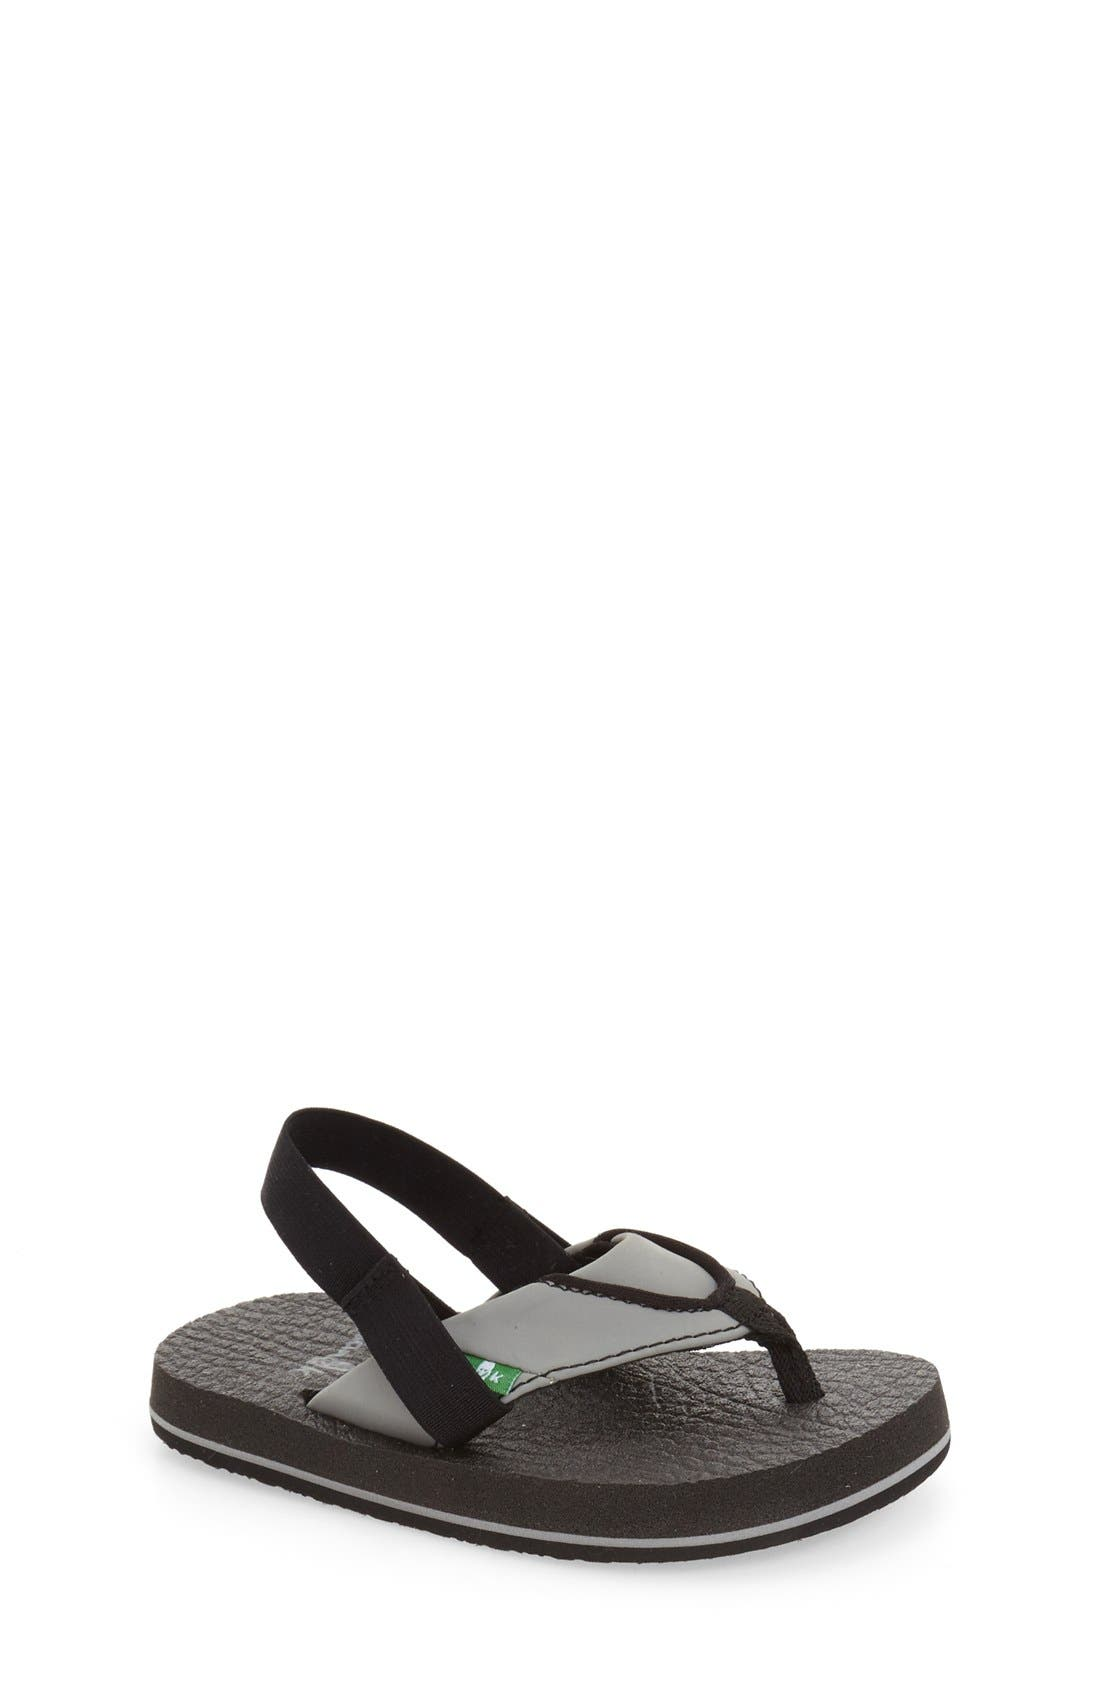 'Root Beer' Sandal,                             Main thumbnail 1, color,                             Grey Fabric